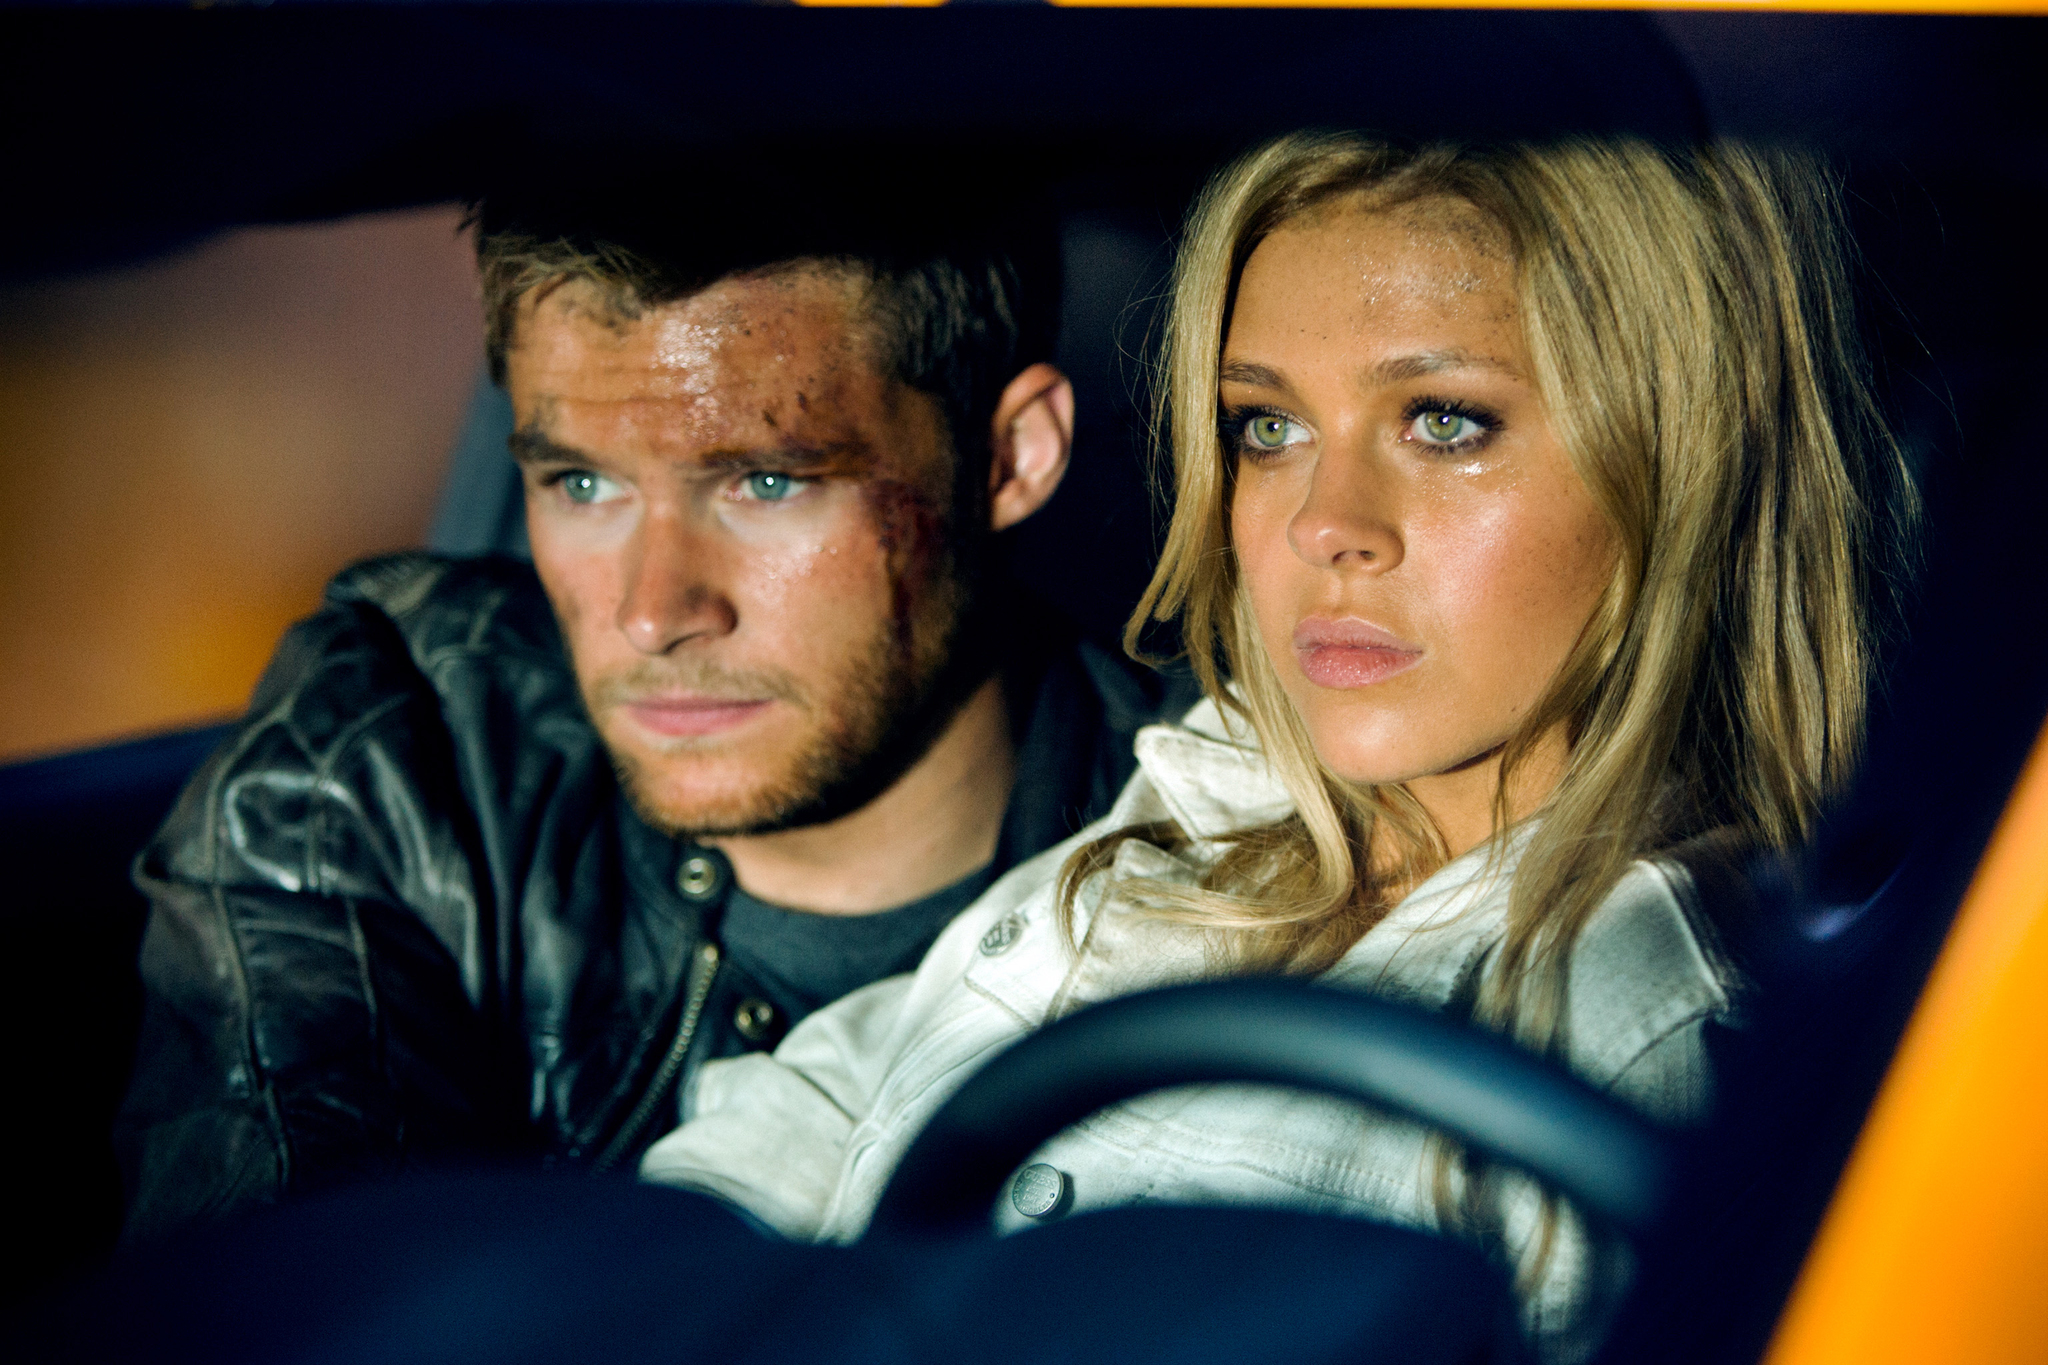 Nicola Peltz and Jack Reynor in Transformers: Age of Extinction (2014)